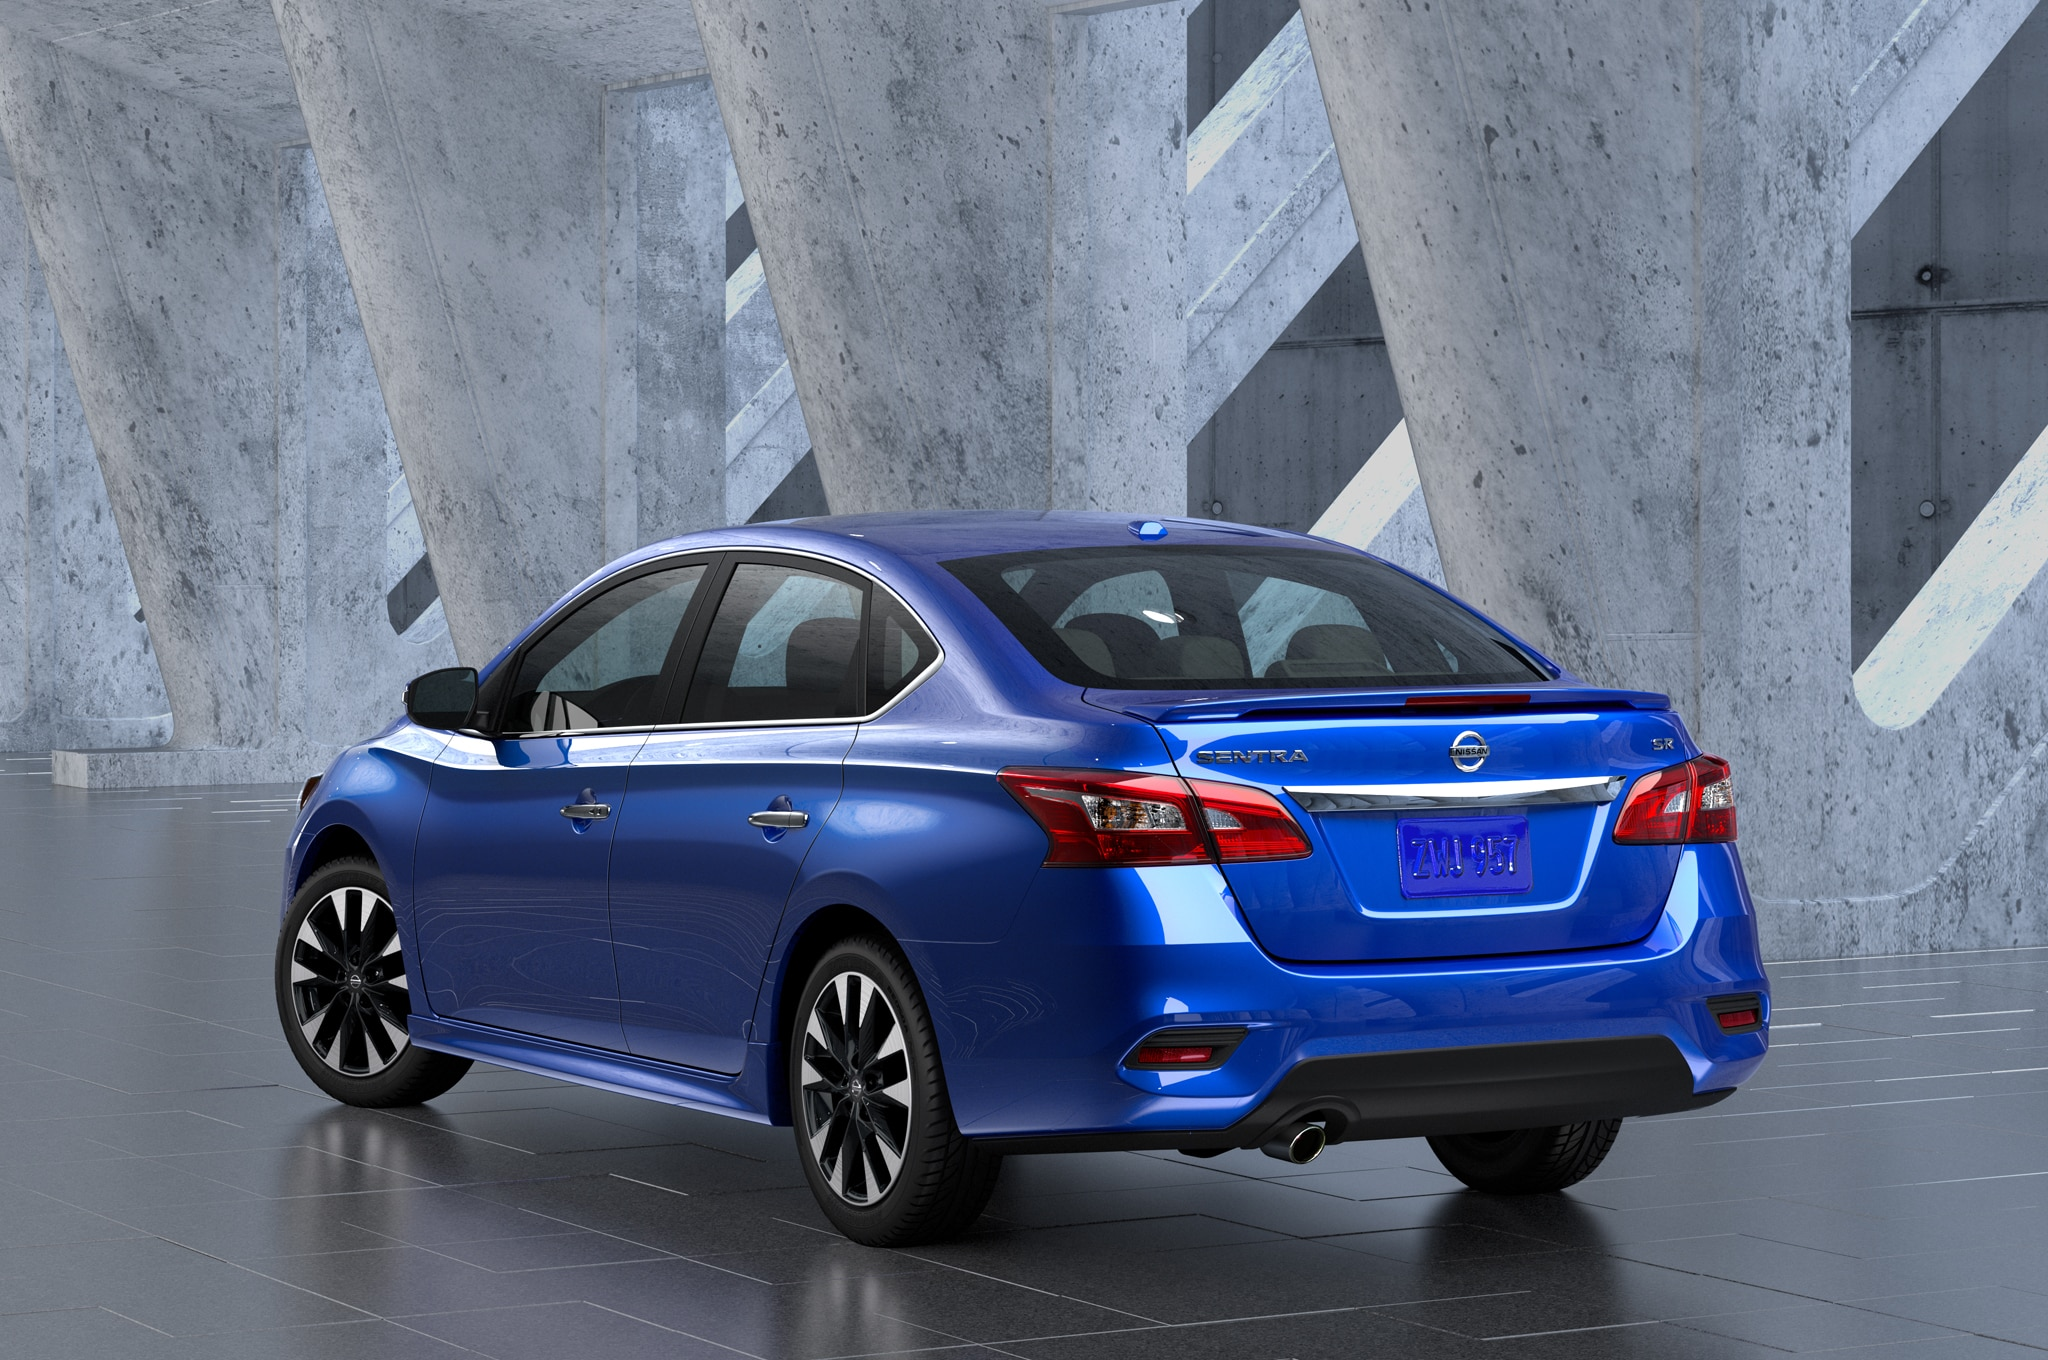 2016 nissan sentra pricing rises 200 1 450. Black Bedroom Furniture Sets. Home Design Ideas